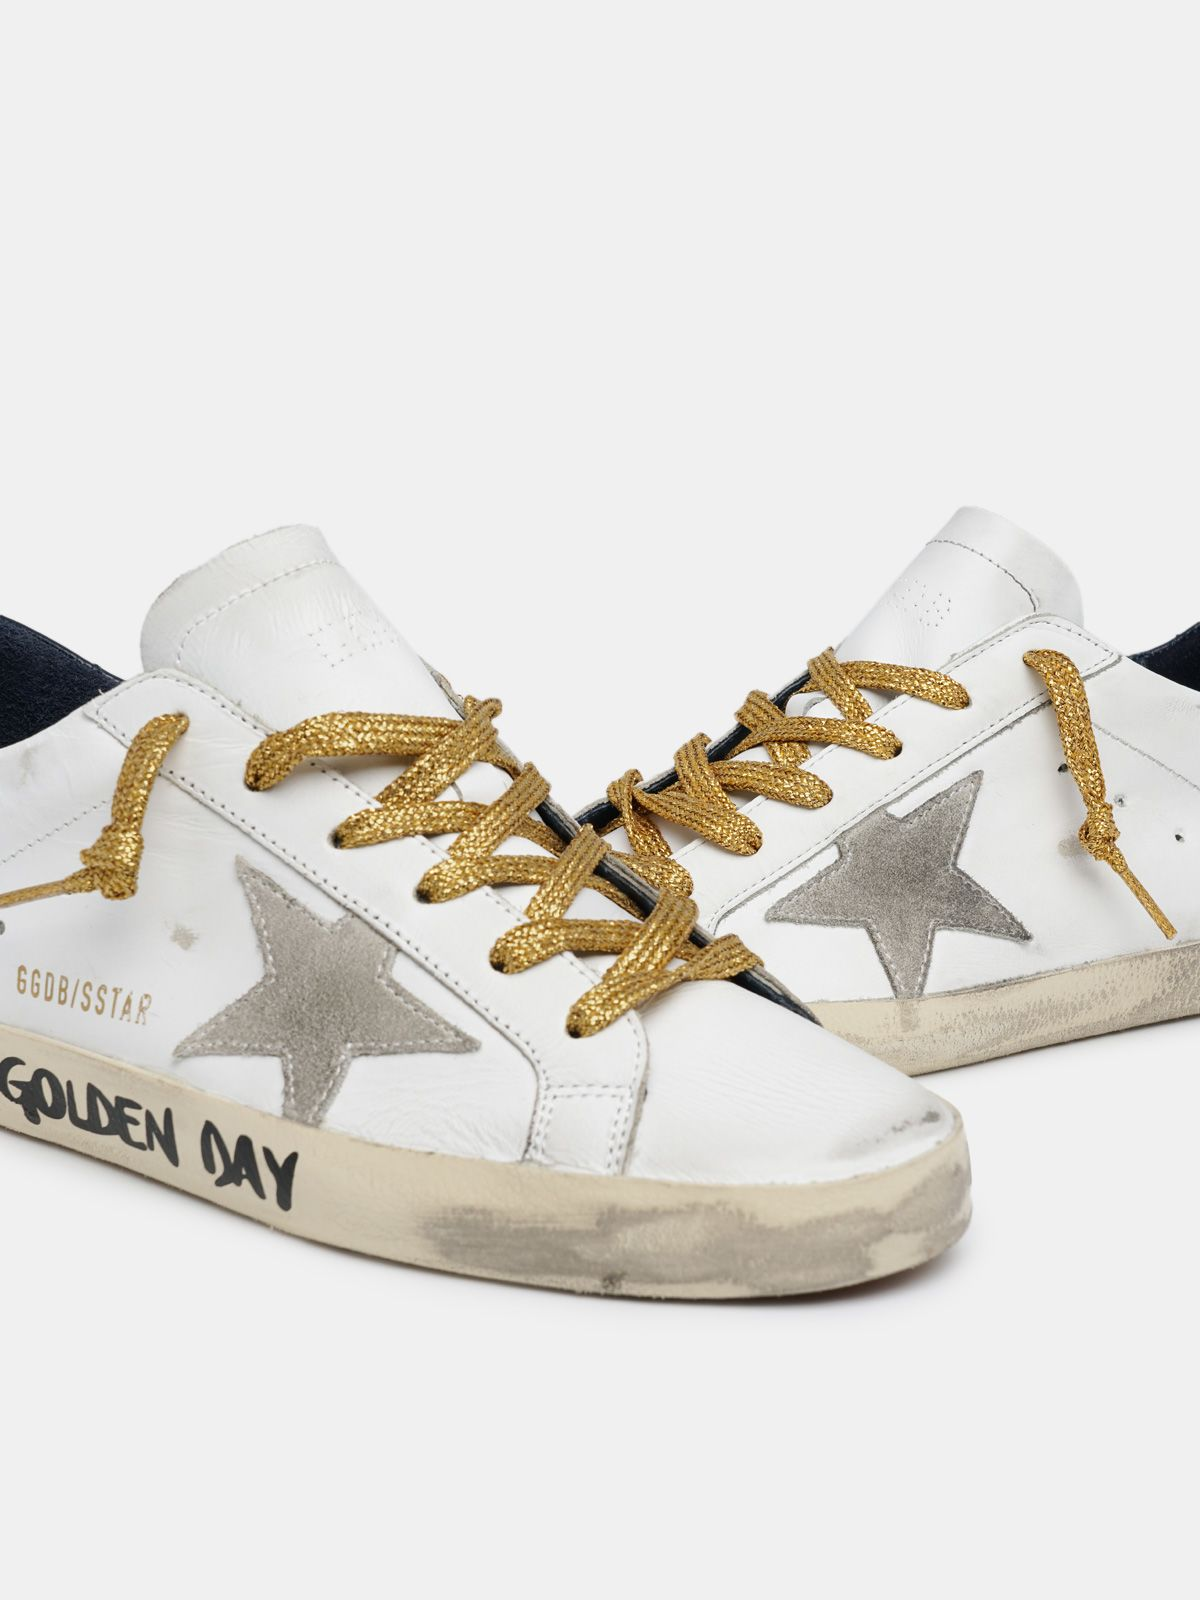 Golden Goose - Super-Star con scritta a mano Have a Golden Day in